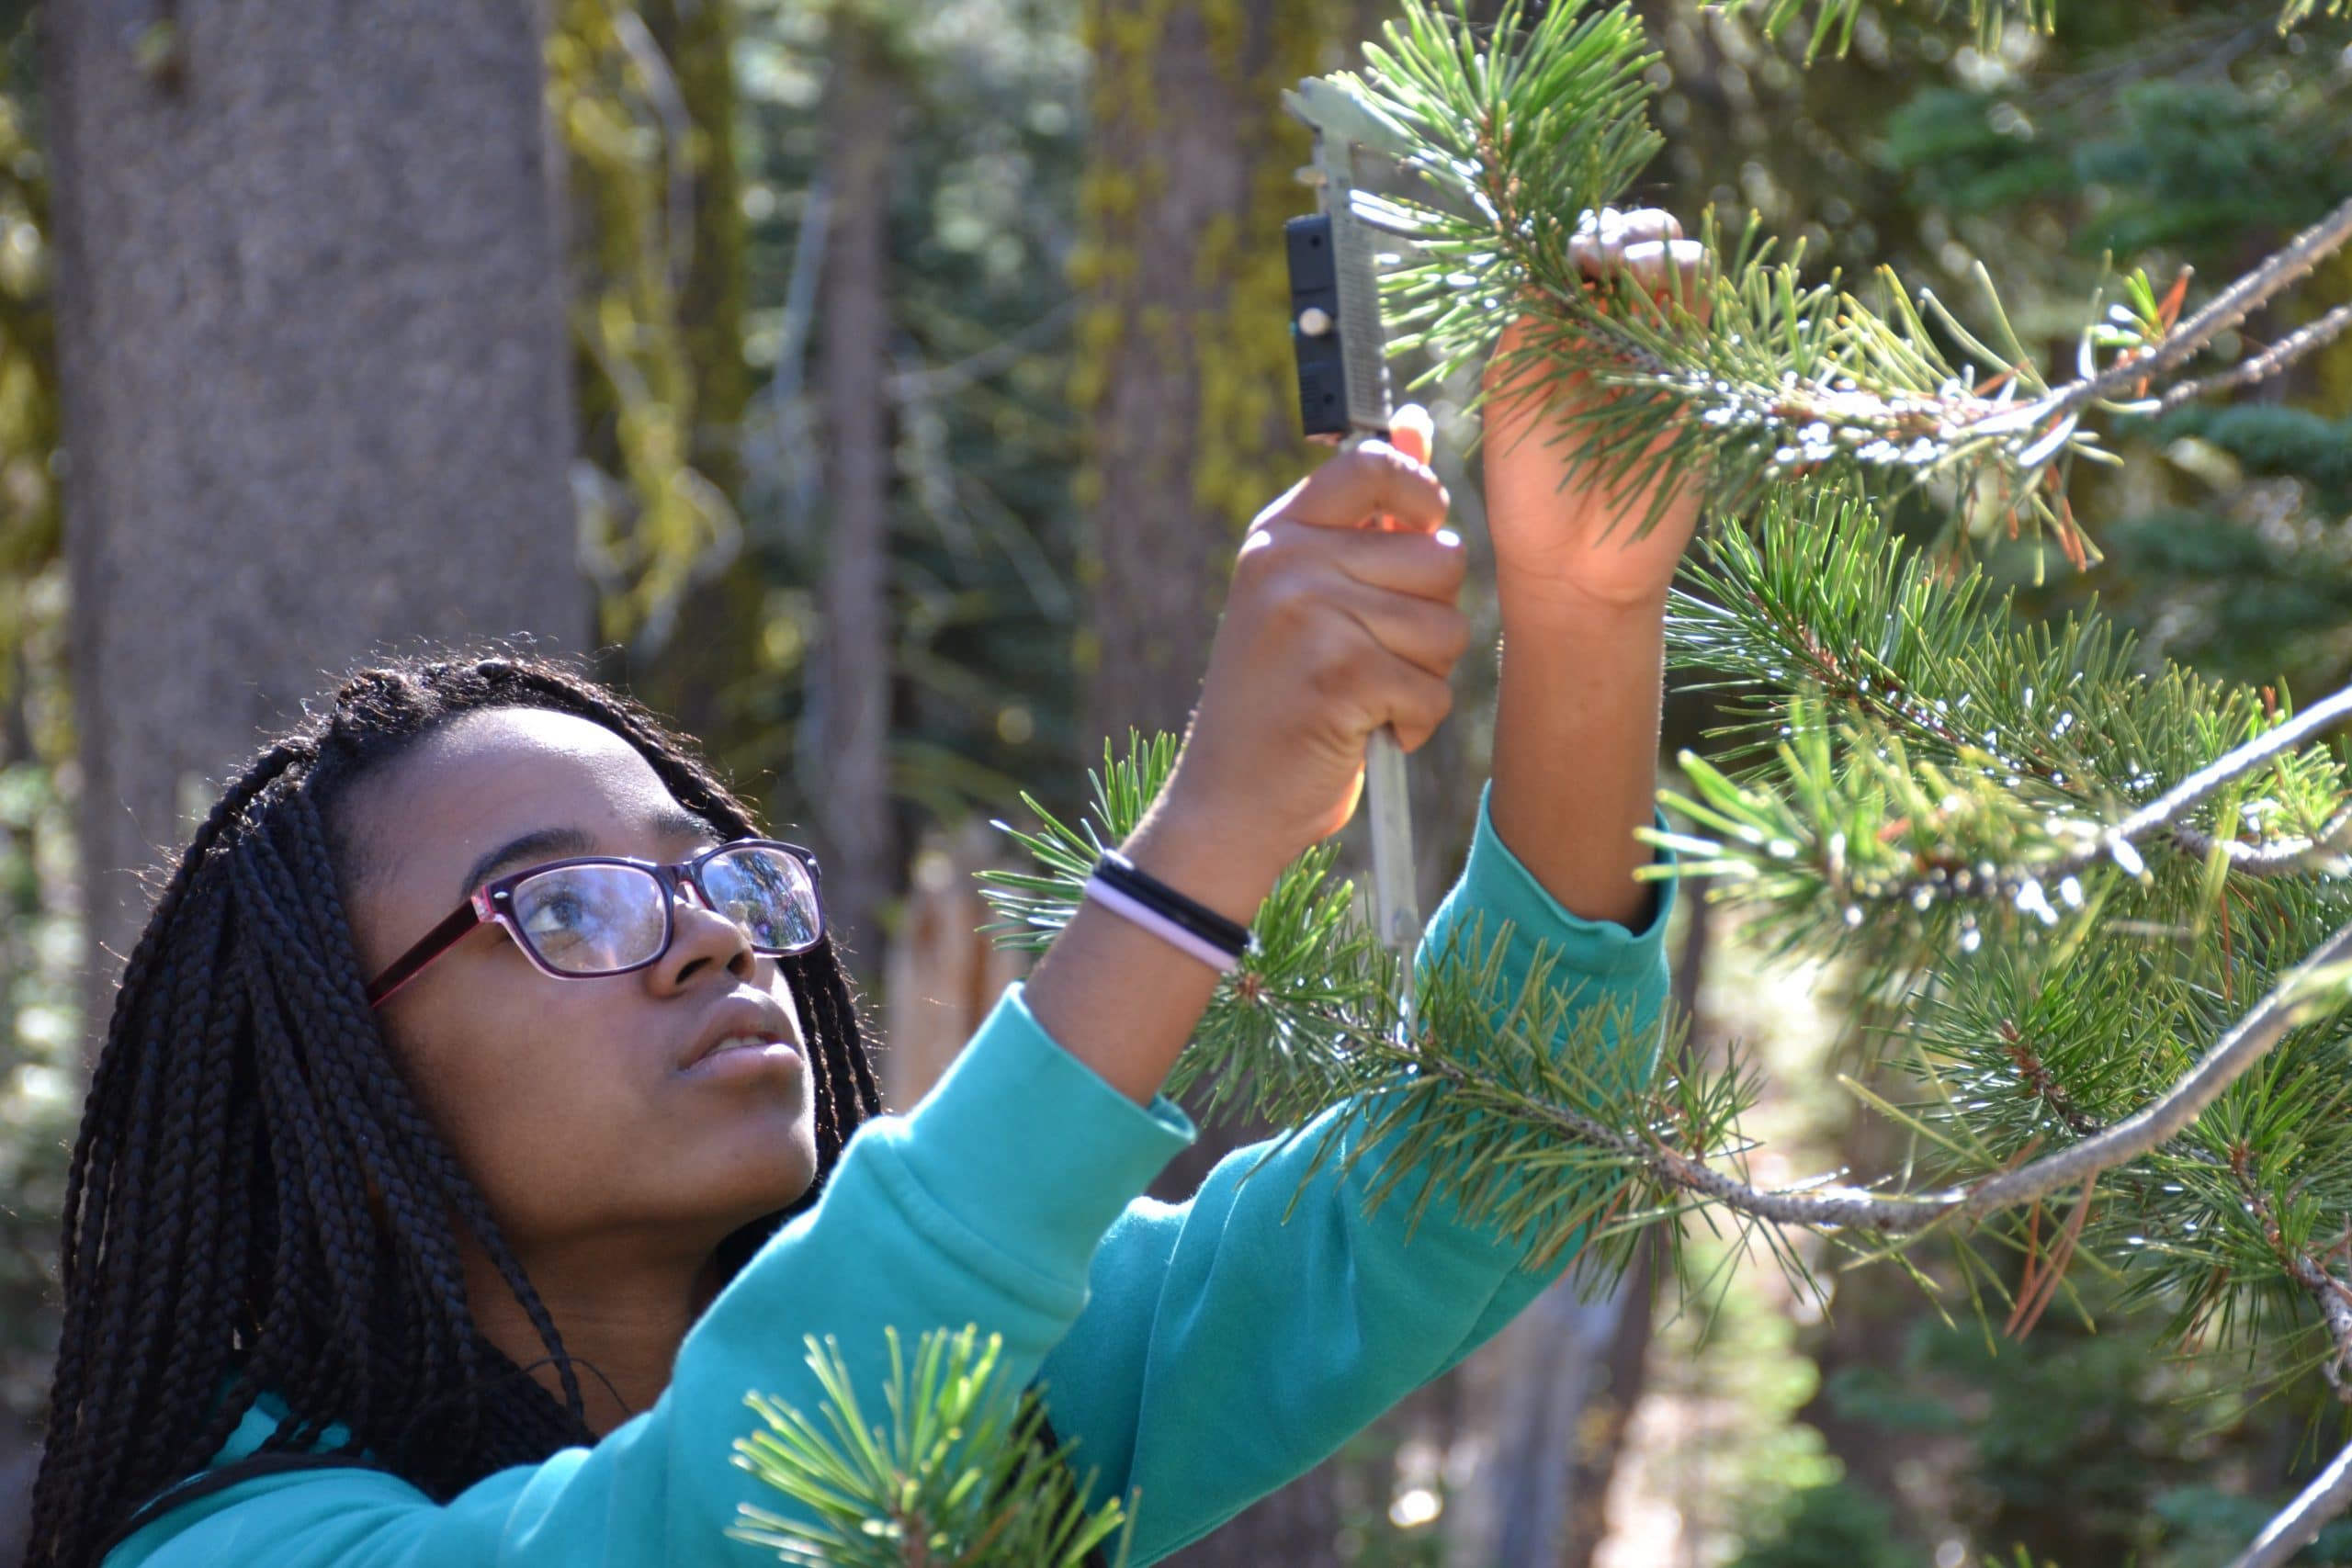 Why is an all-girls science camp important?